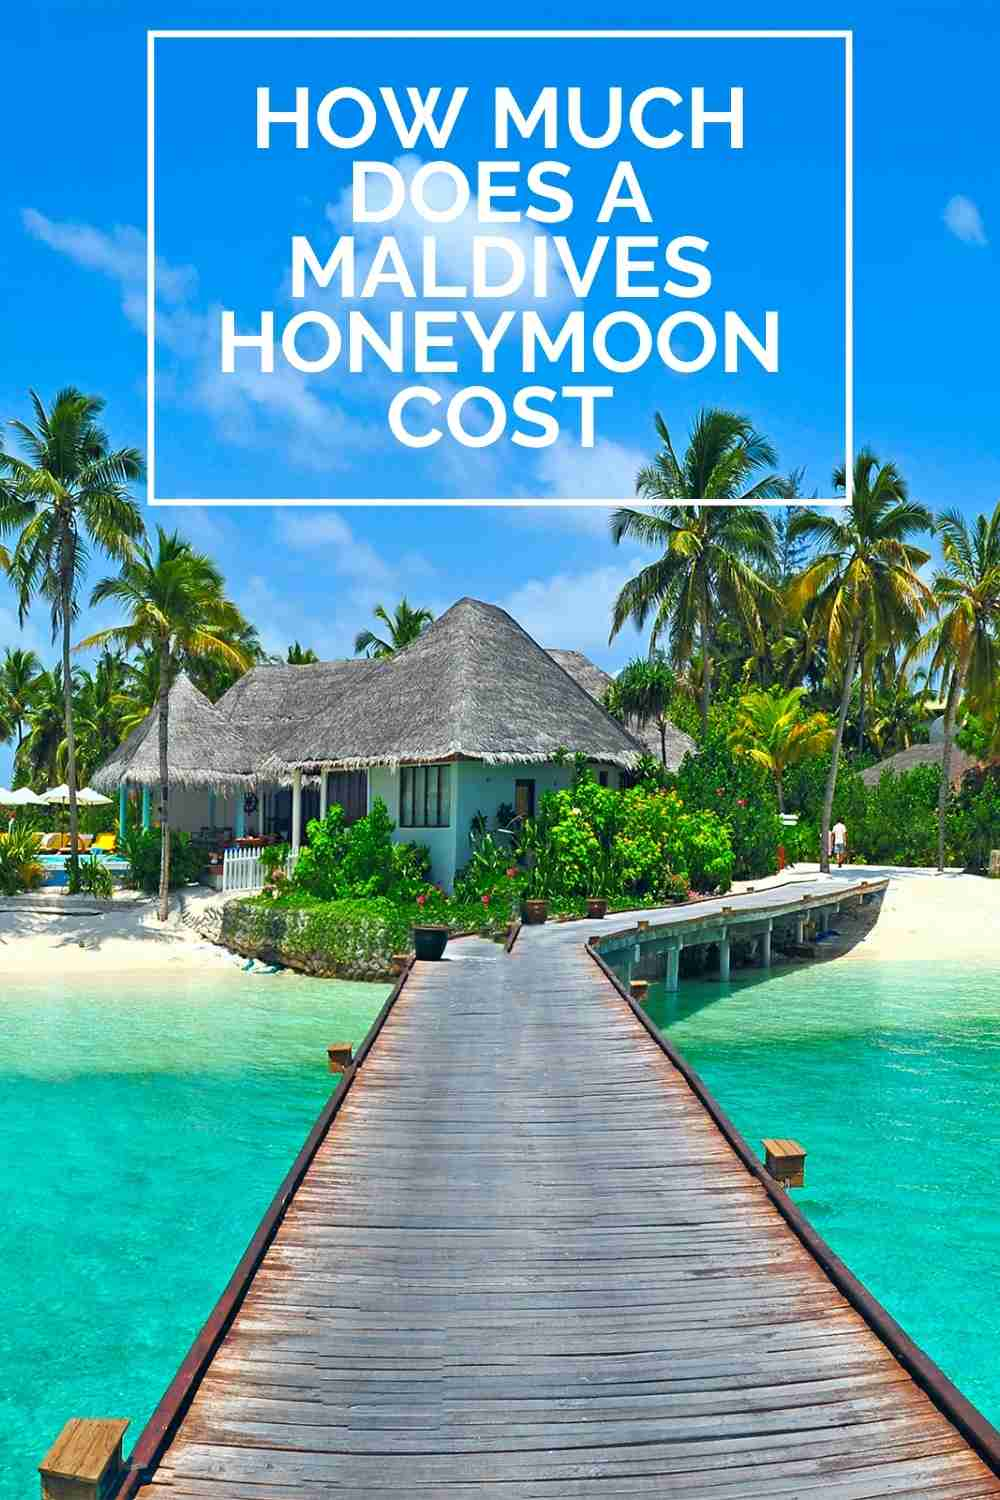 How much does a Maldives honeymoon cost